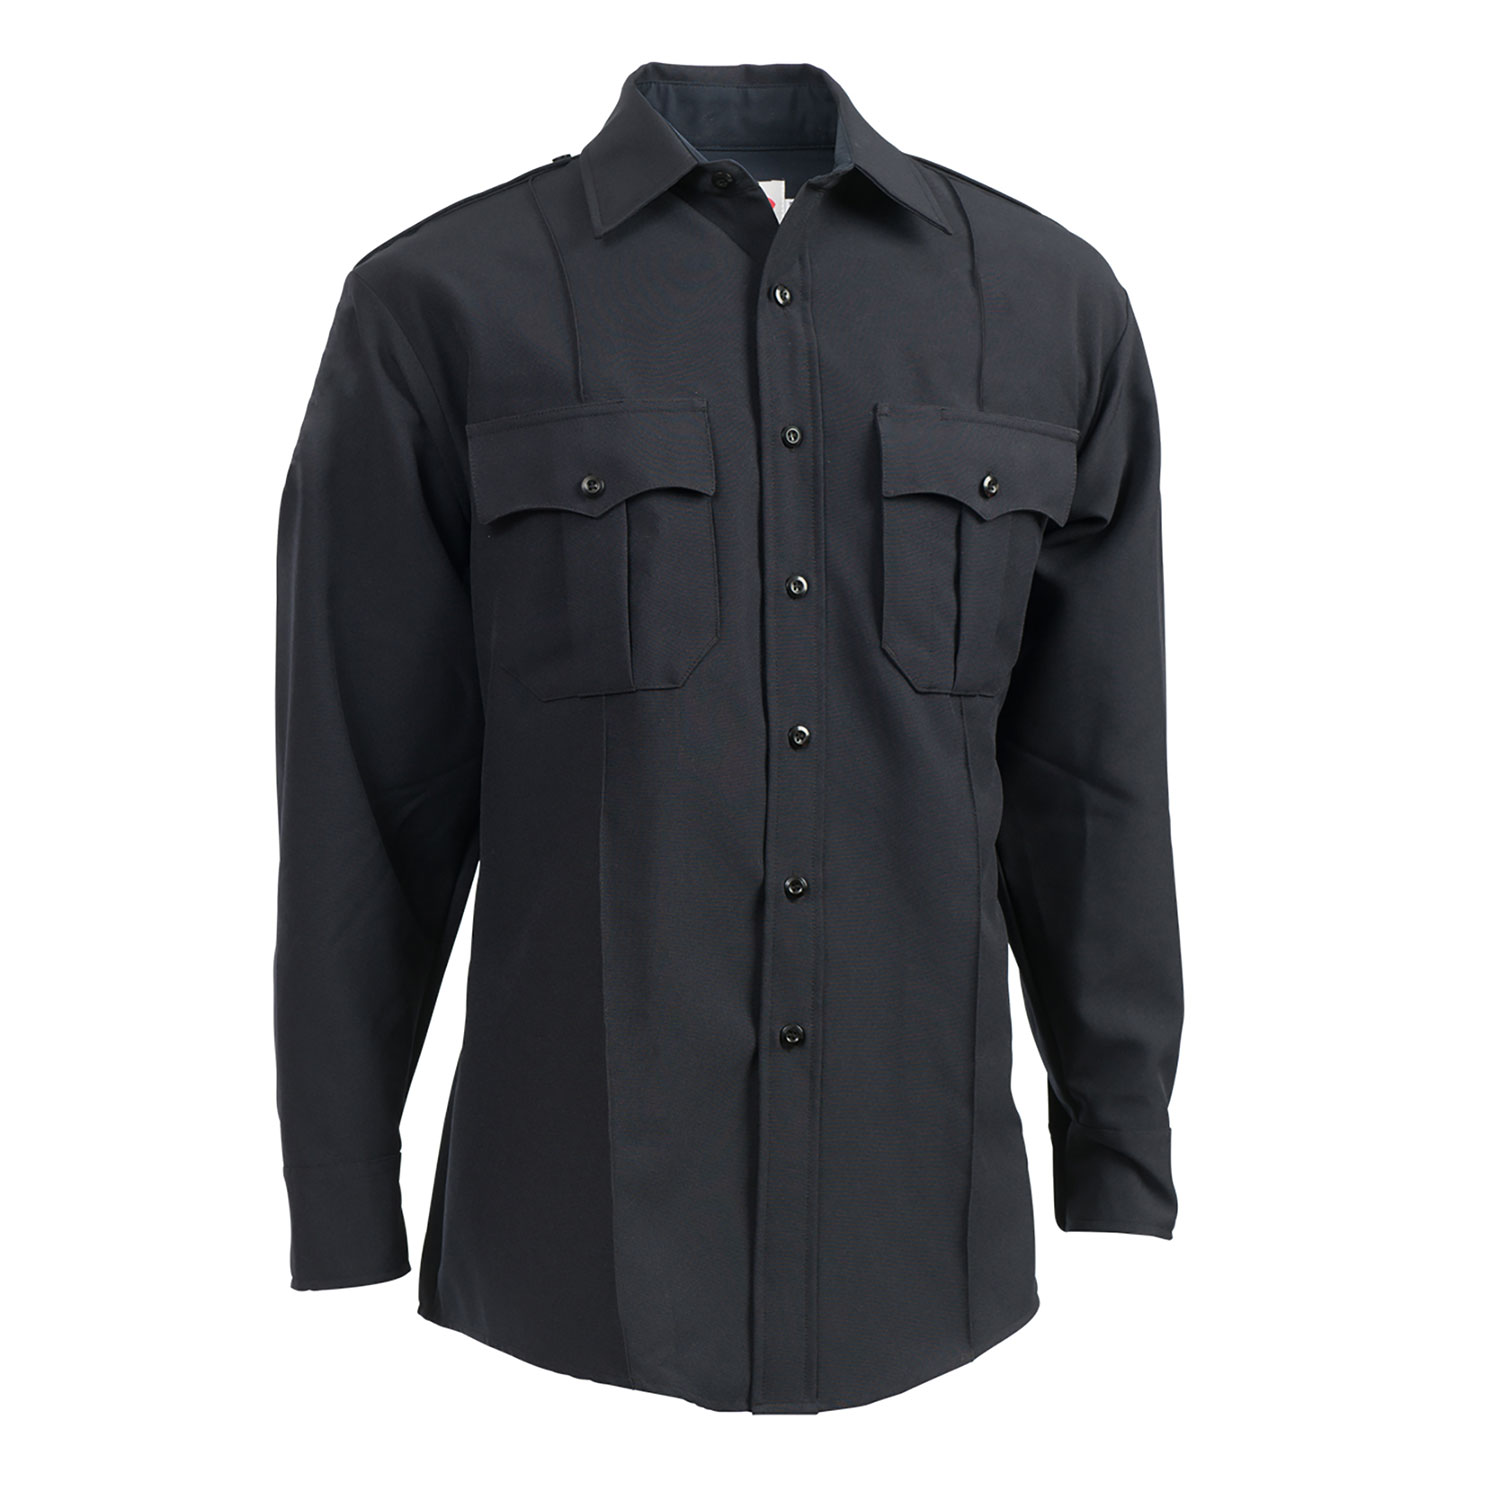 Elbeco TexTrop2 Men's Long Sleeve Shirt